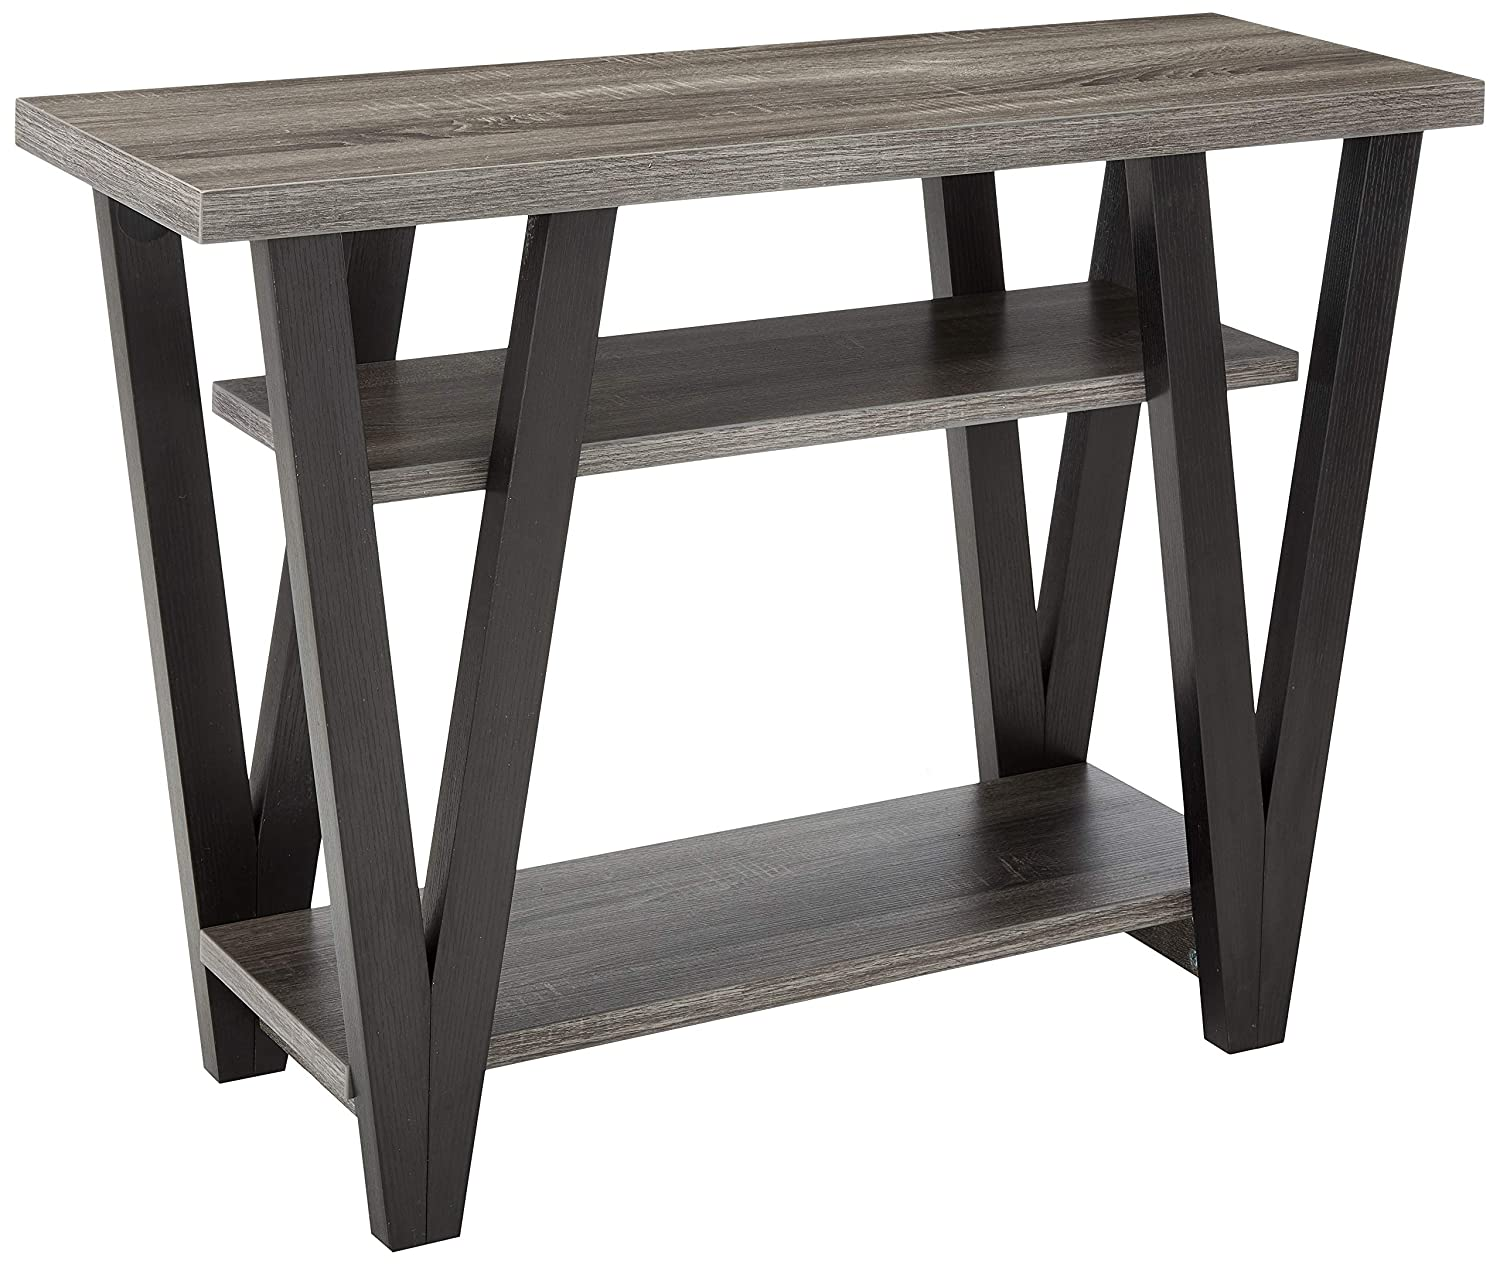 Coaster 705399-CO 2 Shelf Console Table, Antique Grey Black